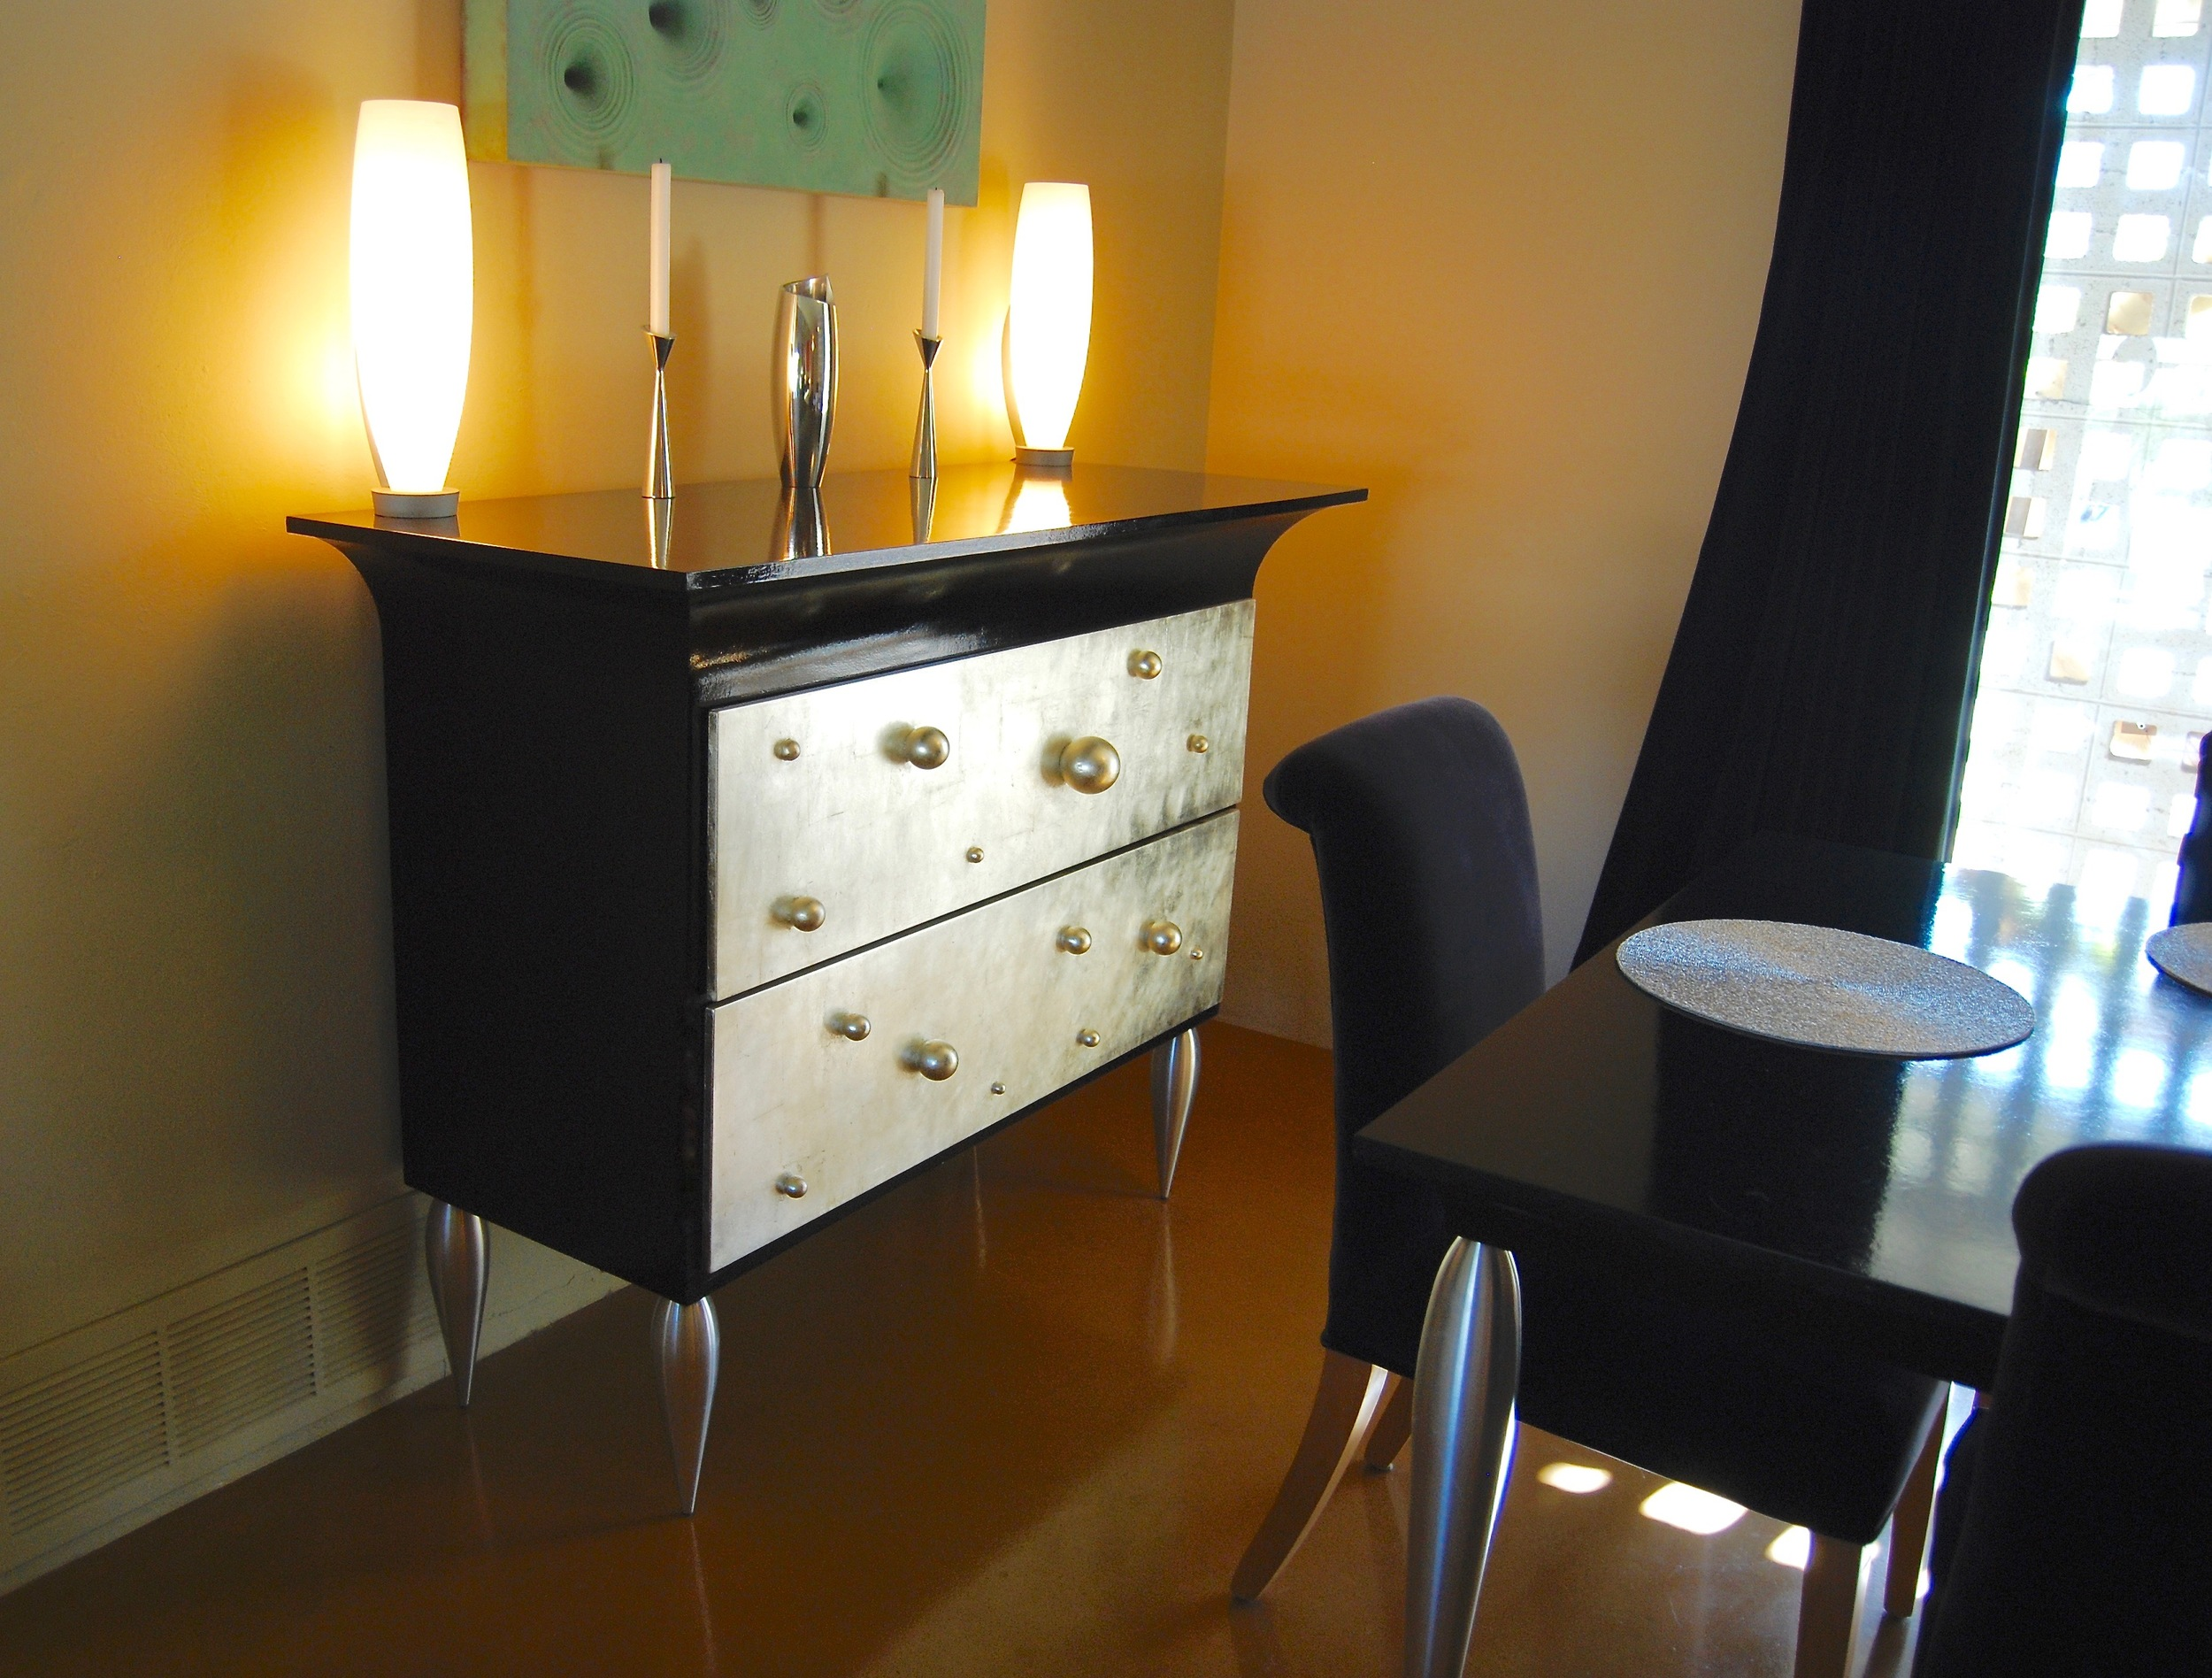 Coffin & King Custom Furniture/ Interiors - Chest with Ball Handles, Milled Aluminum Legs, Hand Rubbed Oil Paint, 14 Kt. White Gold Leaf